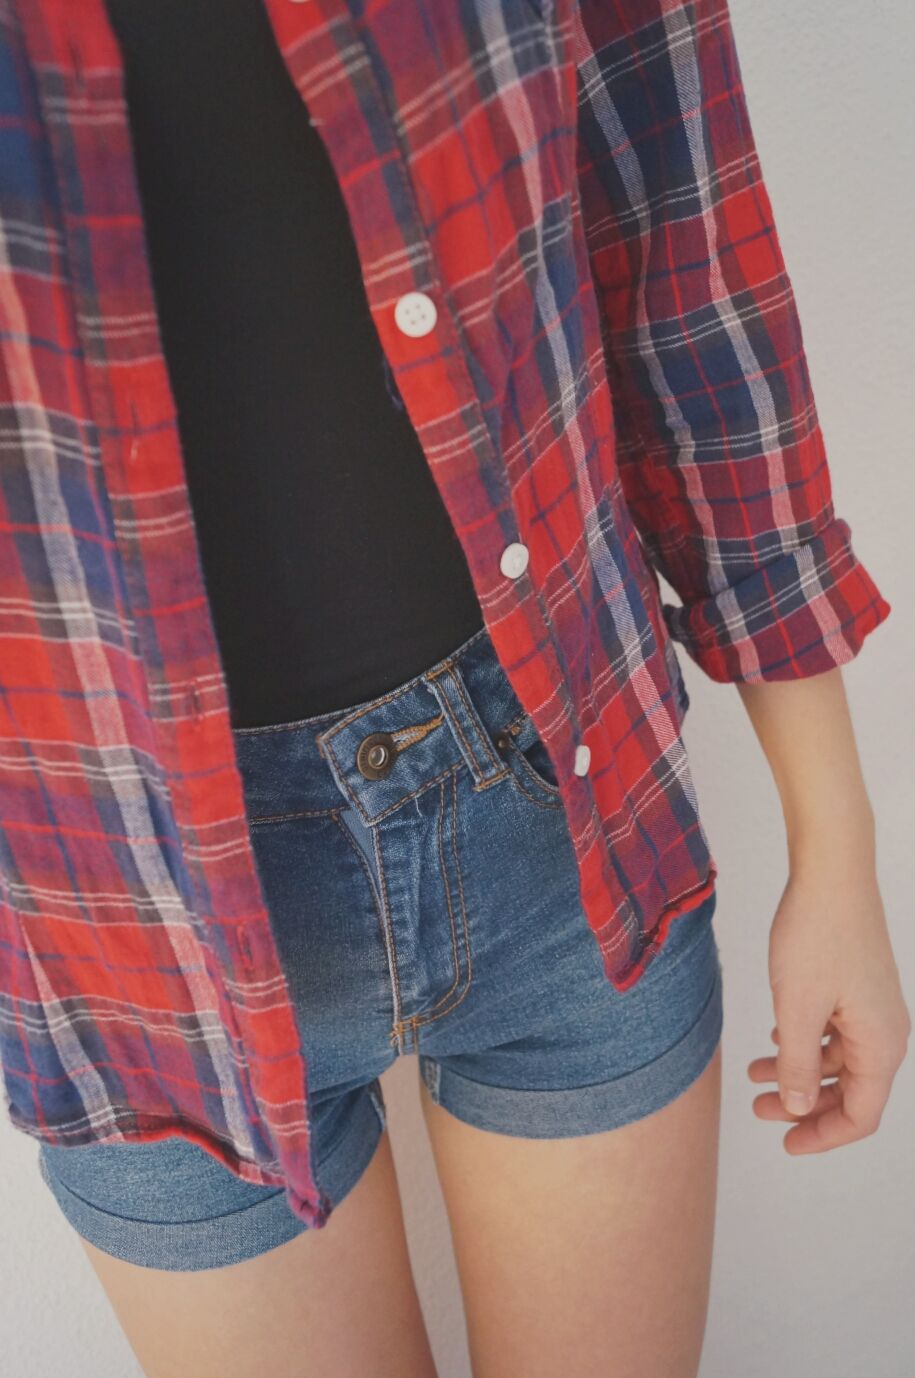 Flannel shirts and shorts  I love these kind of outfits when i go shopping all im gonna buy is